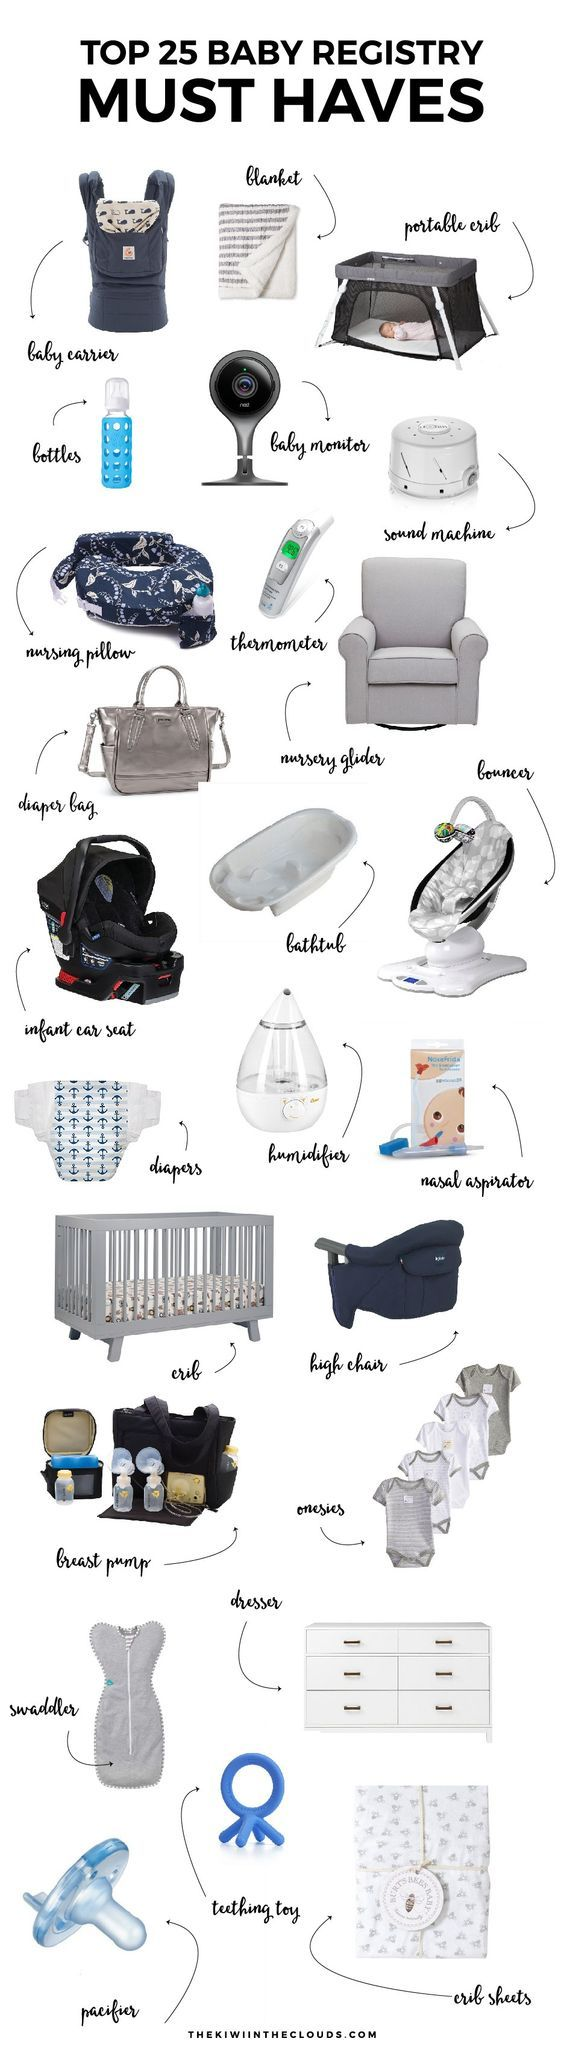 Top 25 Baby Registry Must Haves | Creating the perfect registry can be overwhelming,…